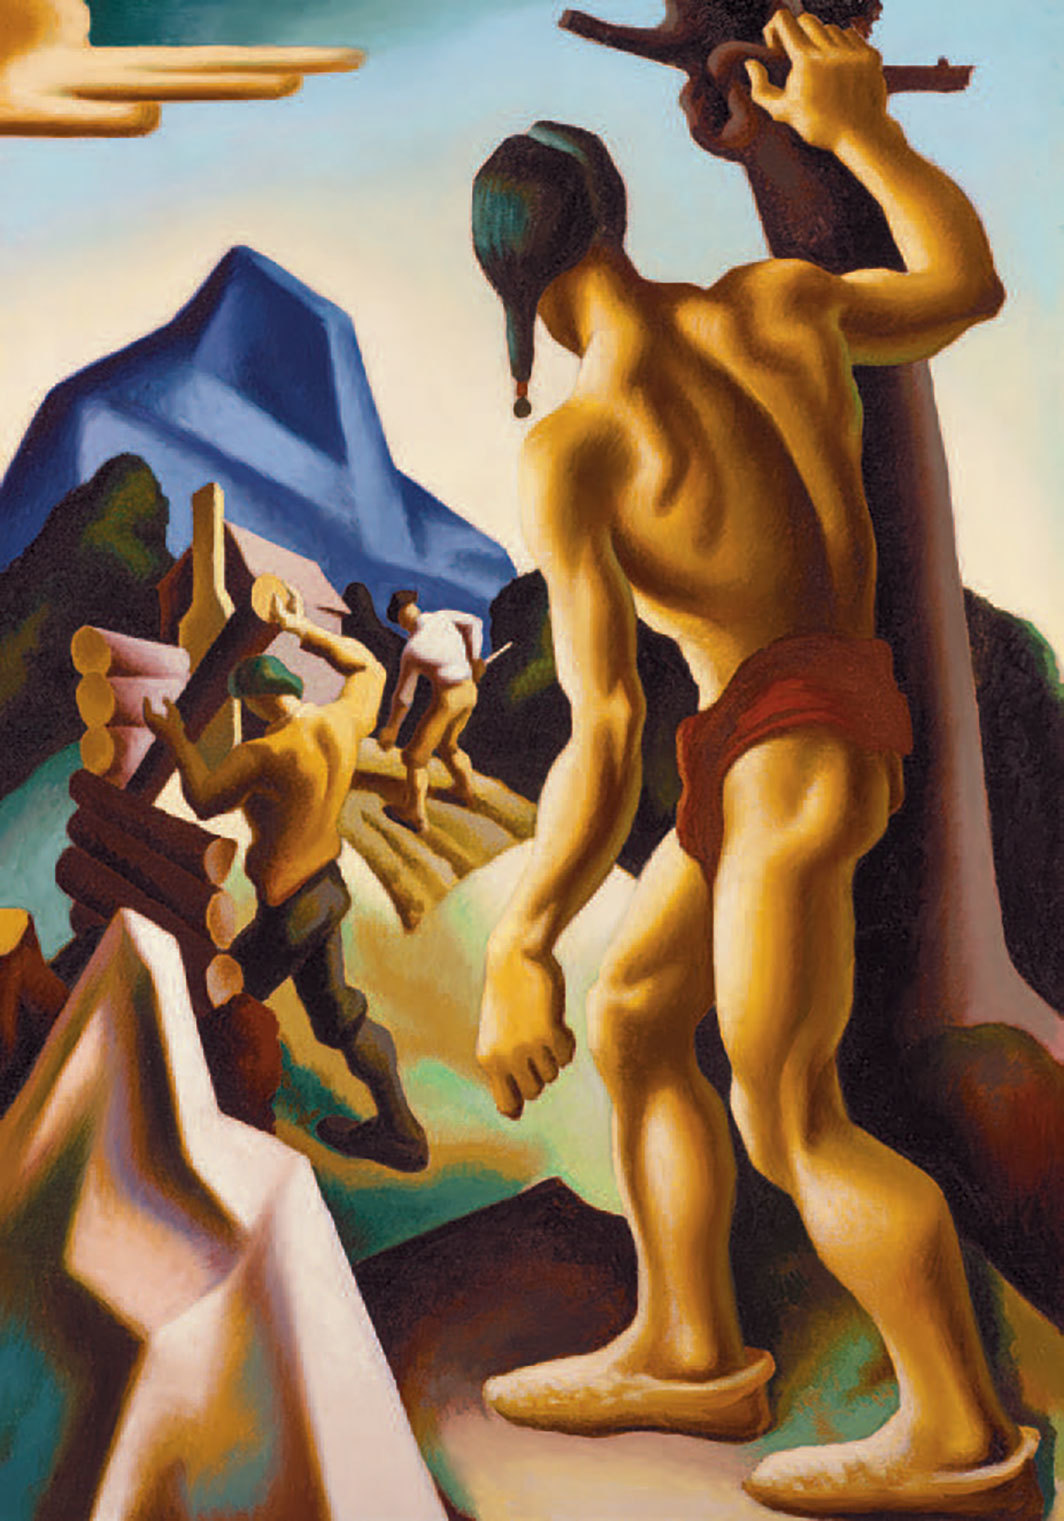 "Thomas Hart Benton, Lost Hunting Ground, 1927–28, oil on canvas mounted on aluminum, 60 1⁄4 × 42 1⁄8"". From the series ""American Historical Epic,"" 1920–28. © T.H. Benton and R.P. Benton Testamentary Trusts/UMB Bank Trustee/Licensed by VAGA at Artists Rights Society (ARS), New York."